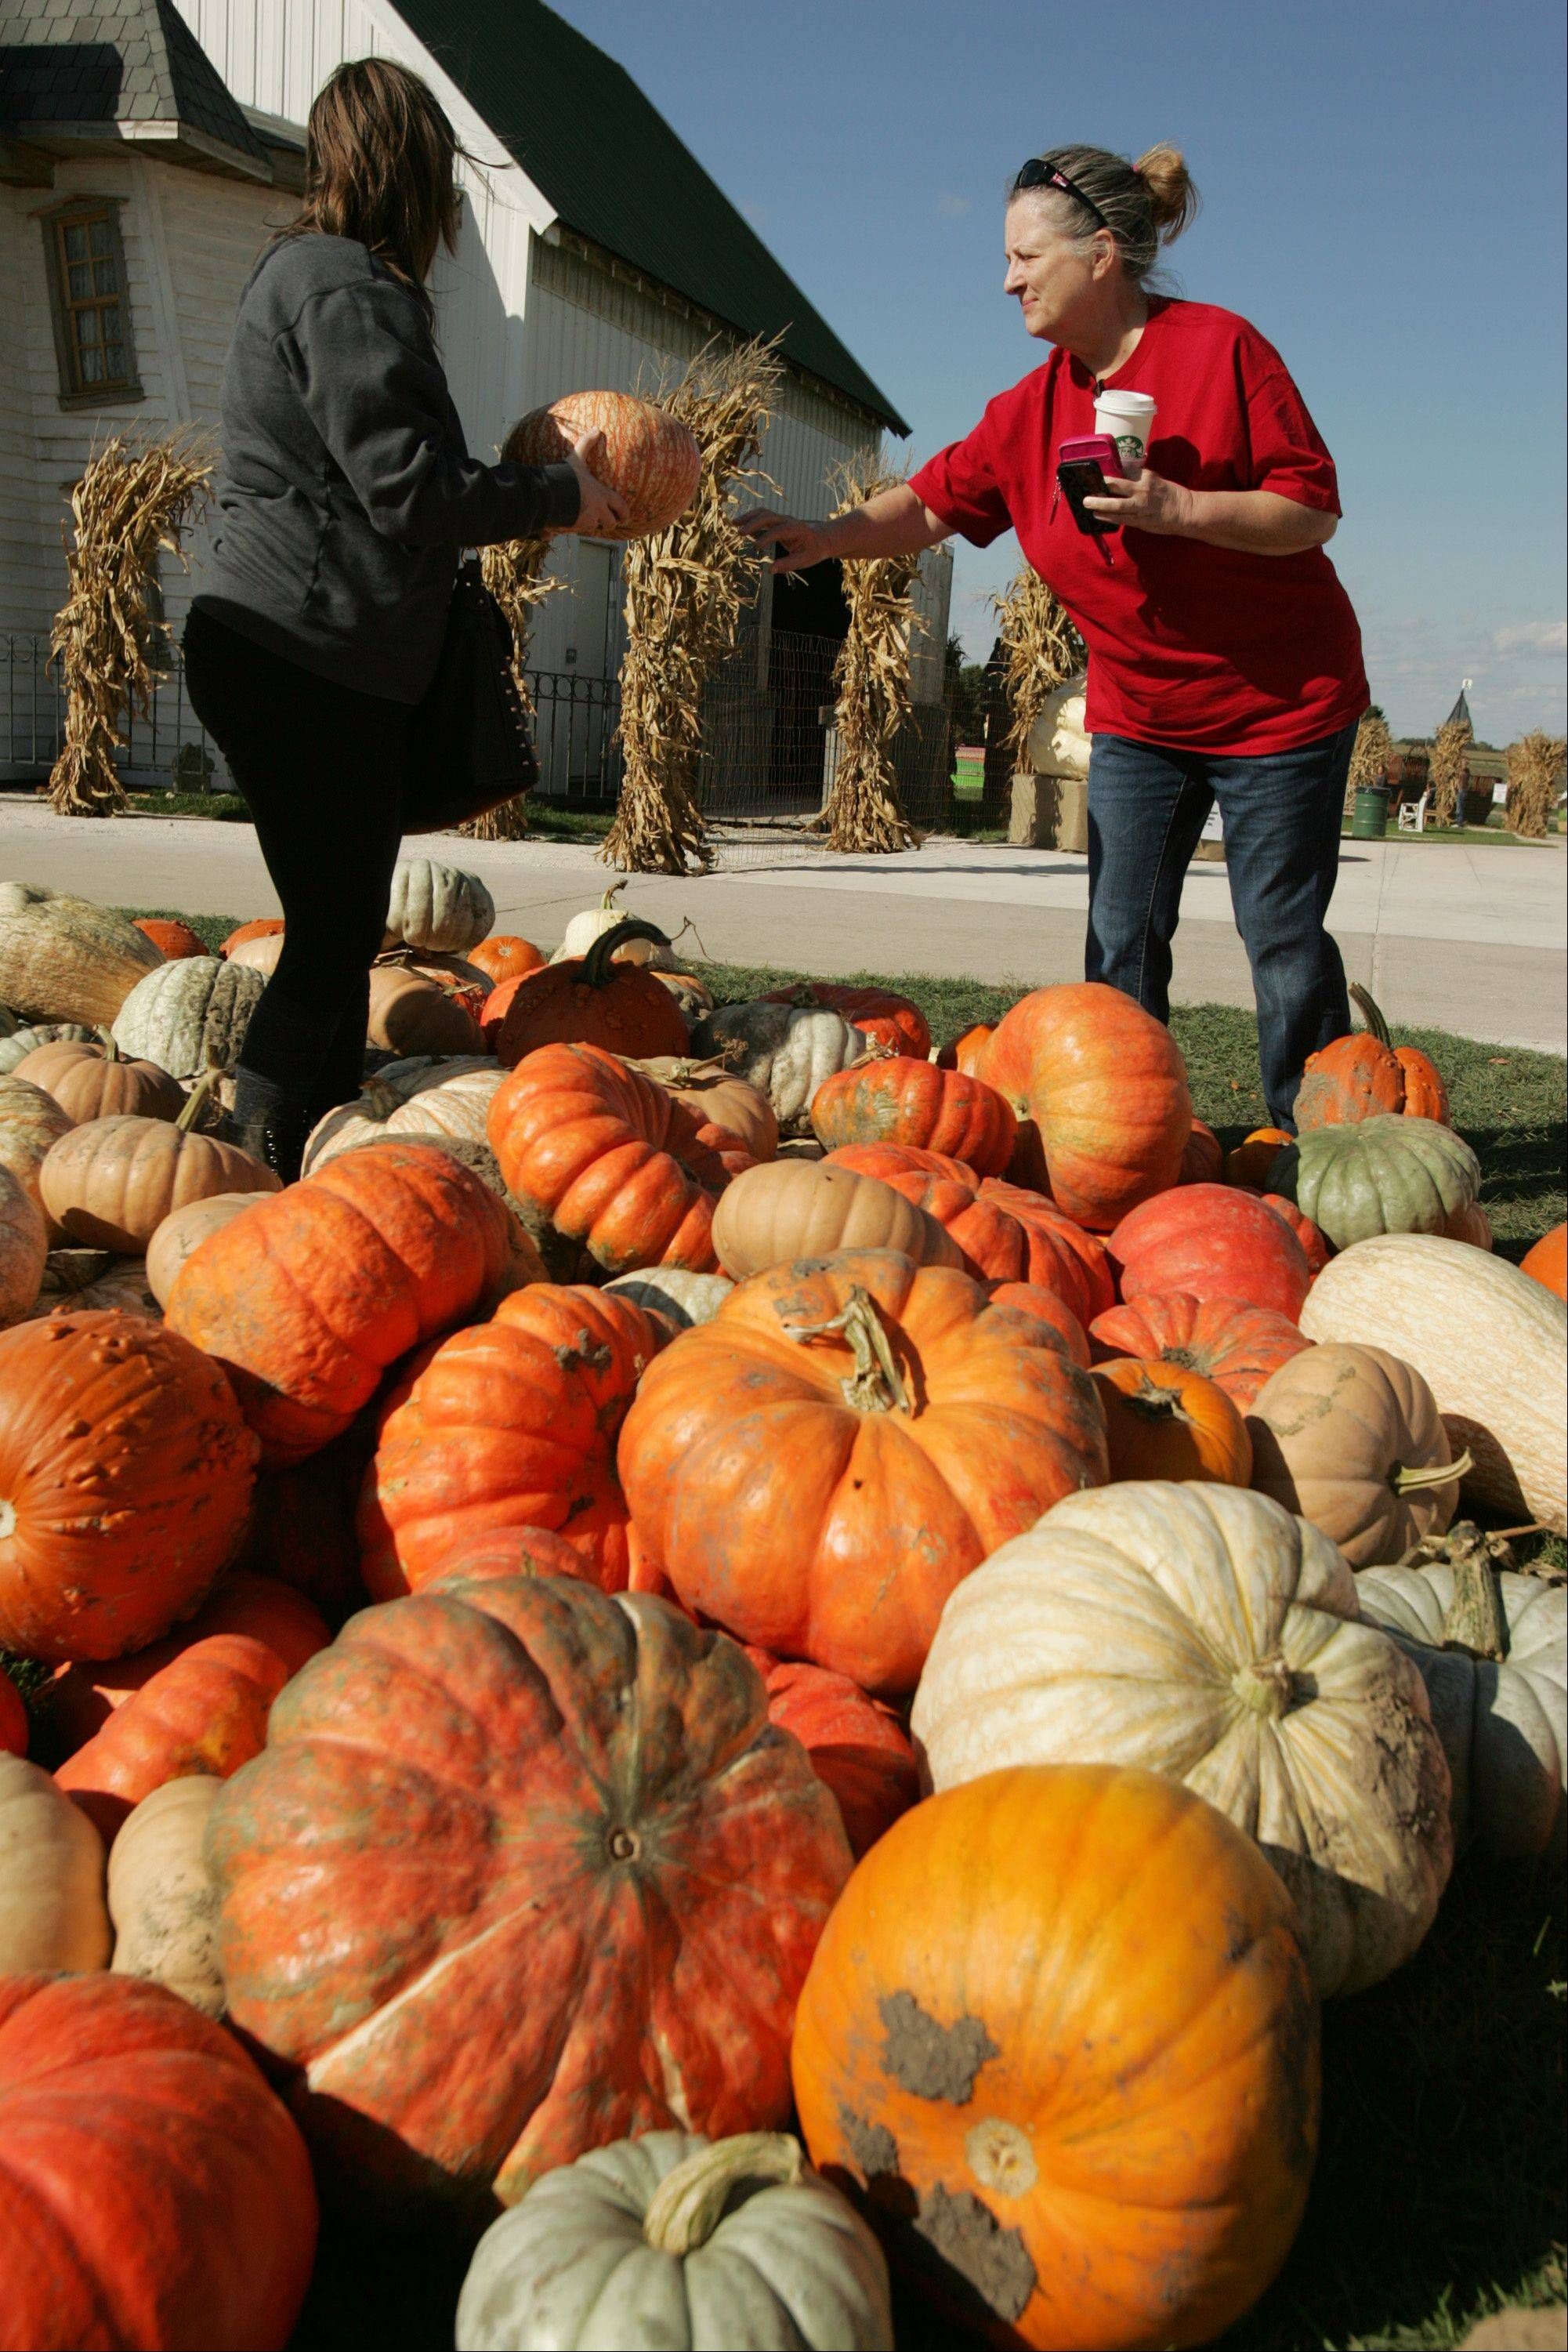 Vicki Hynes, right, and her daughter Jessica pick out just the right pumpkins Monday afternoon at Goebbert's Pumpkin Patch in Hampshire. The Hyneses live in Roselle.